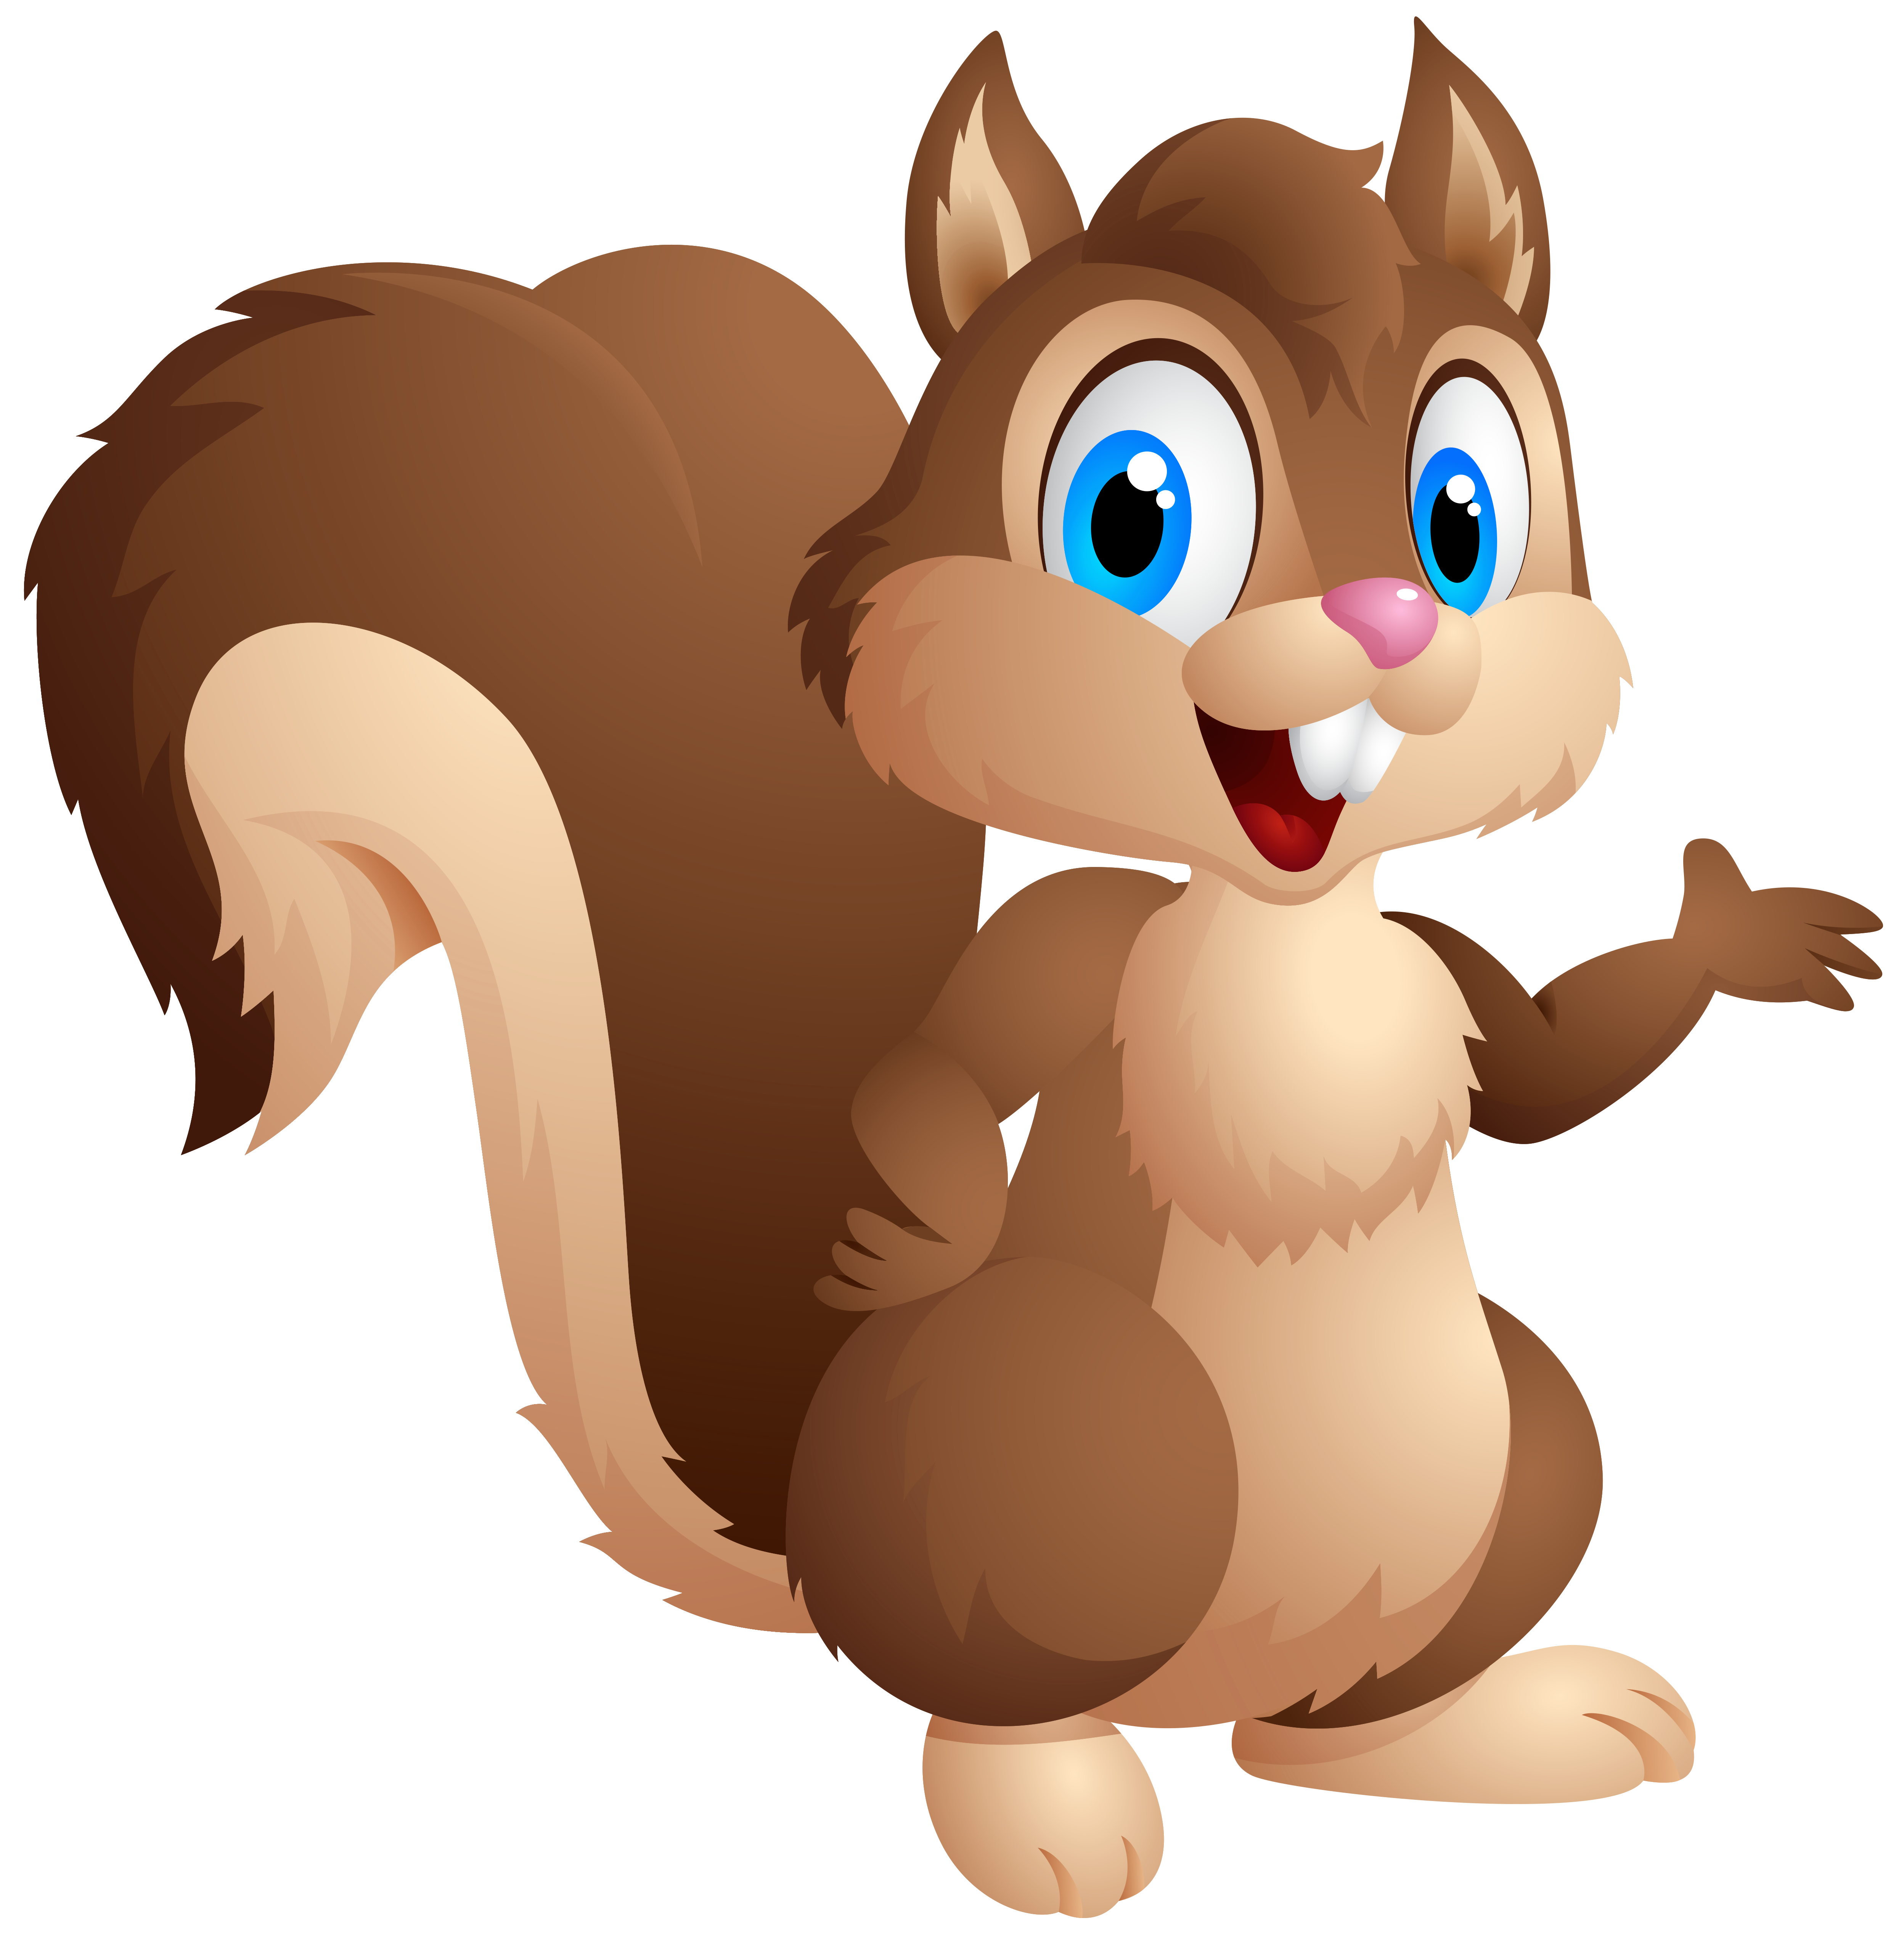 clipart of squirrels #17